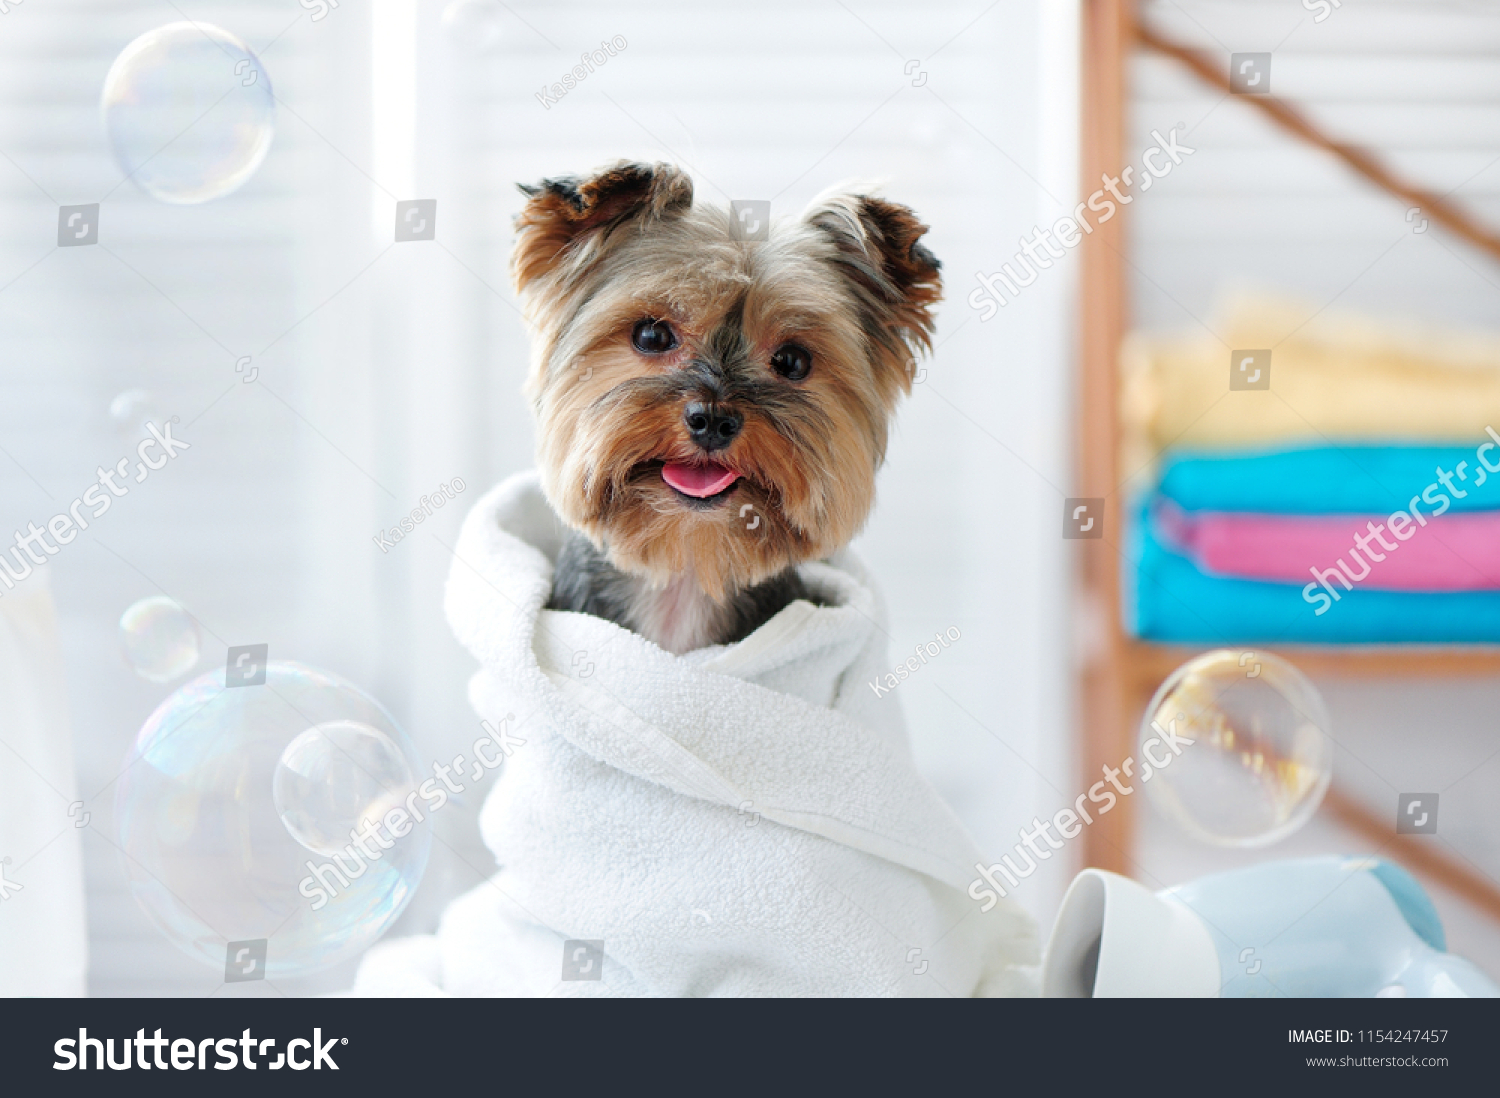 Cute little yorkie dog in a towel after bath #1154247457